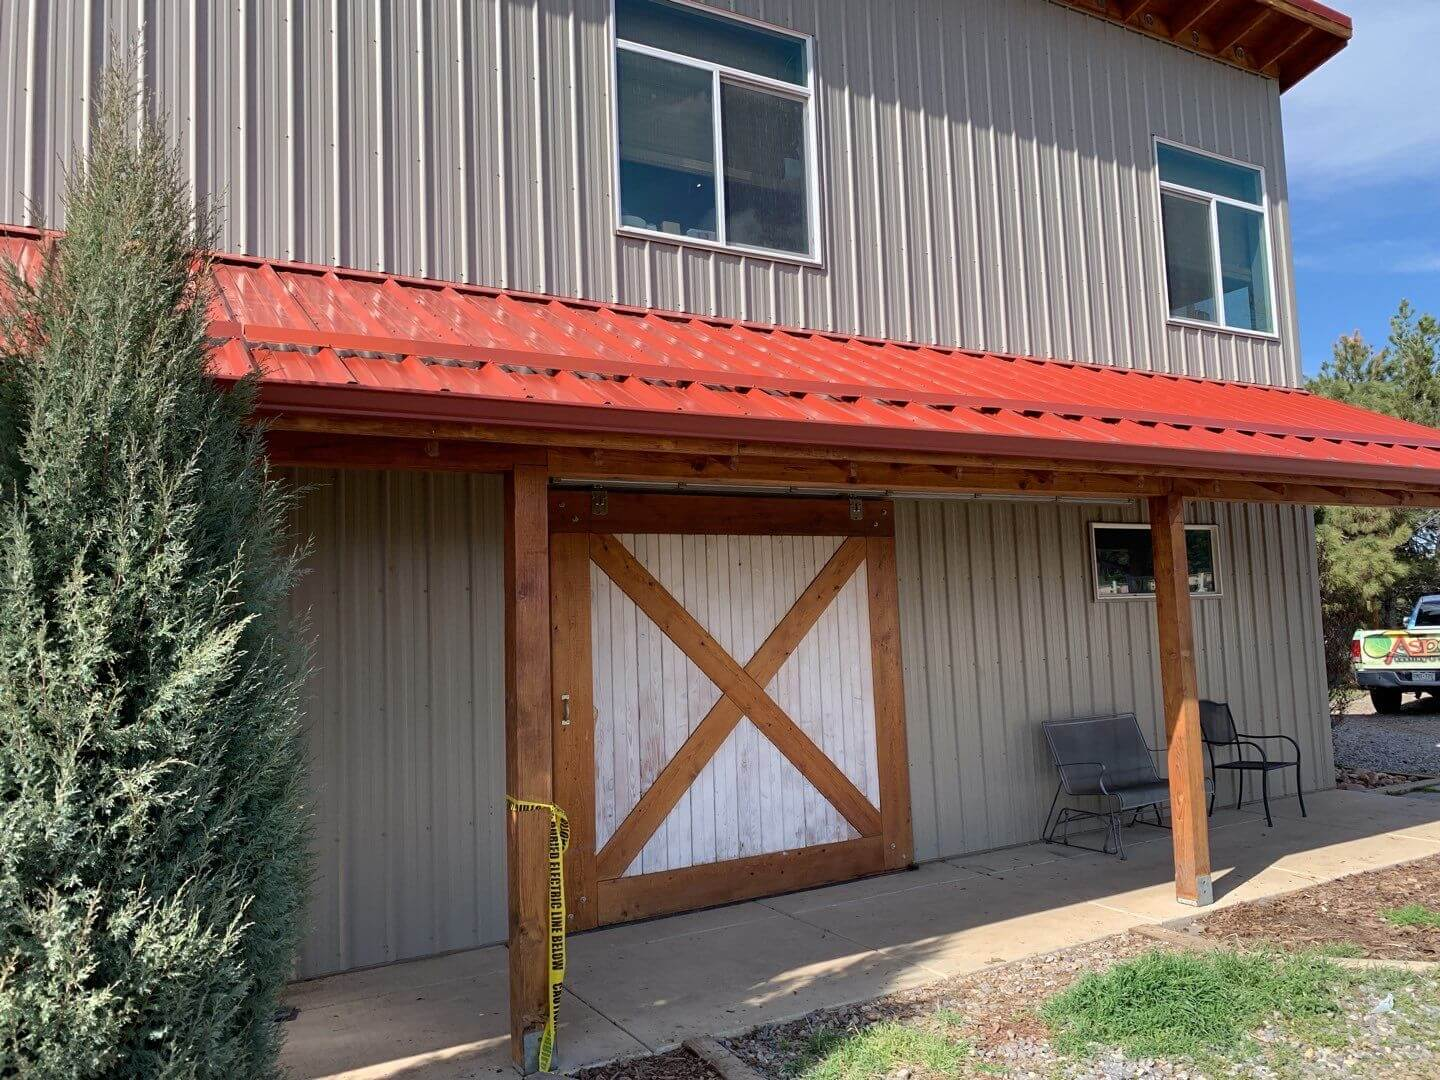 Red metal standing seam roof protects a barn style home from the elements.